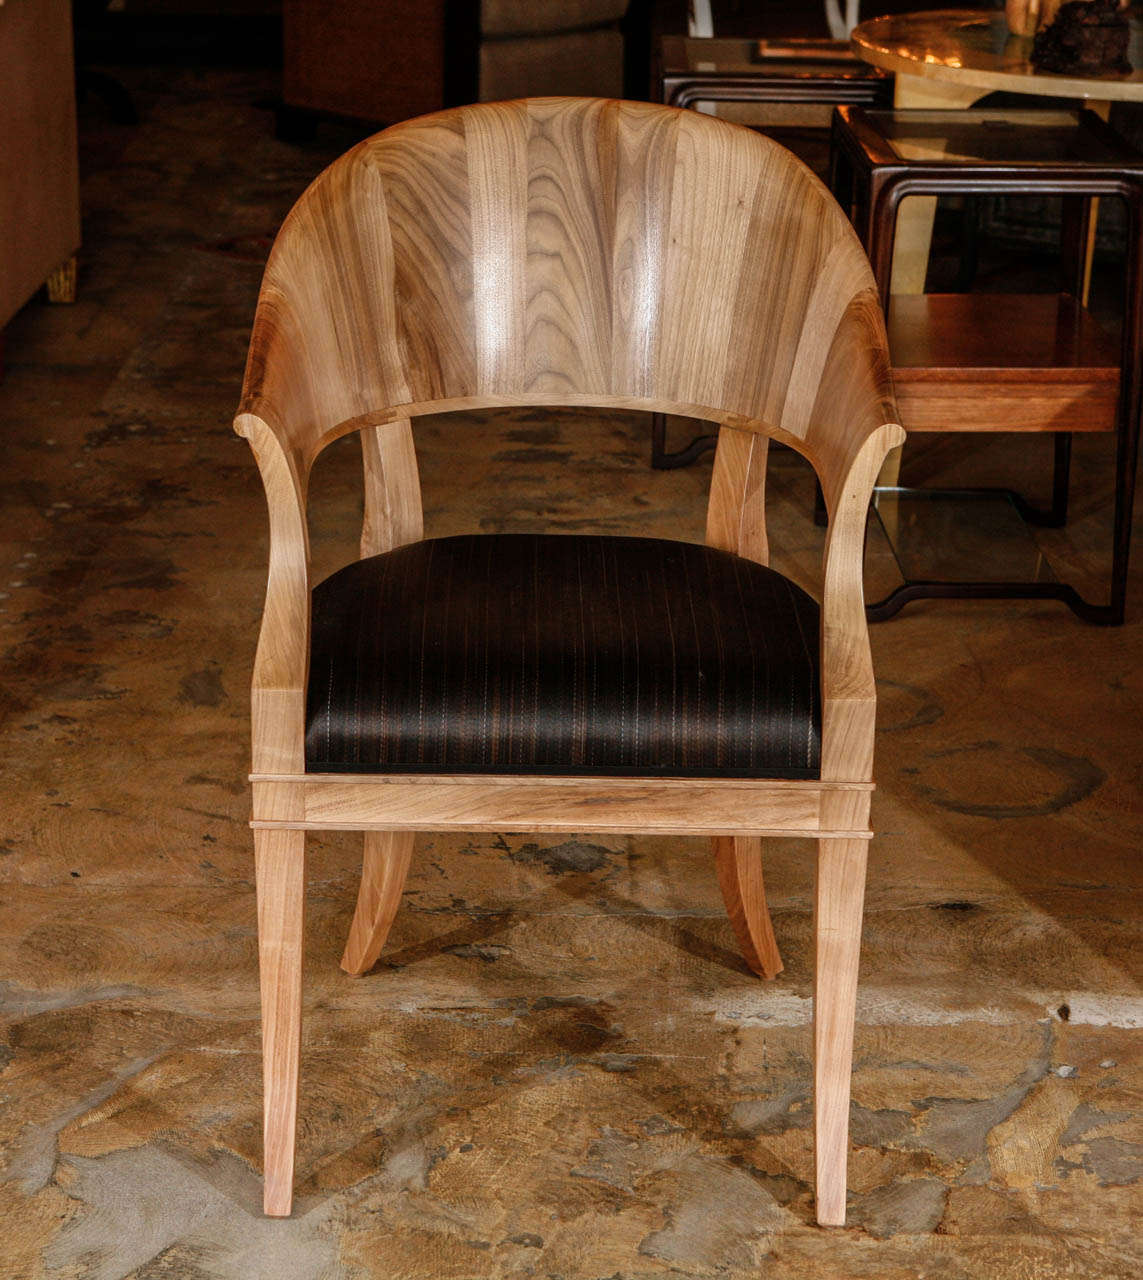 Art deco style chairs - Bleached Walnut French Art Deco Style Chairs 3